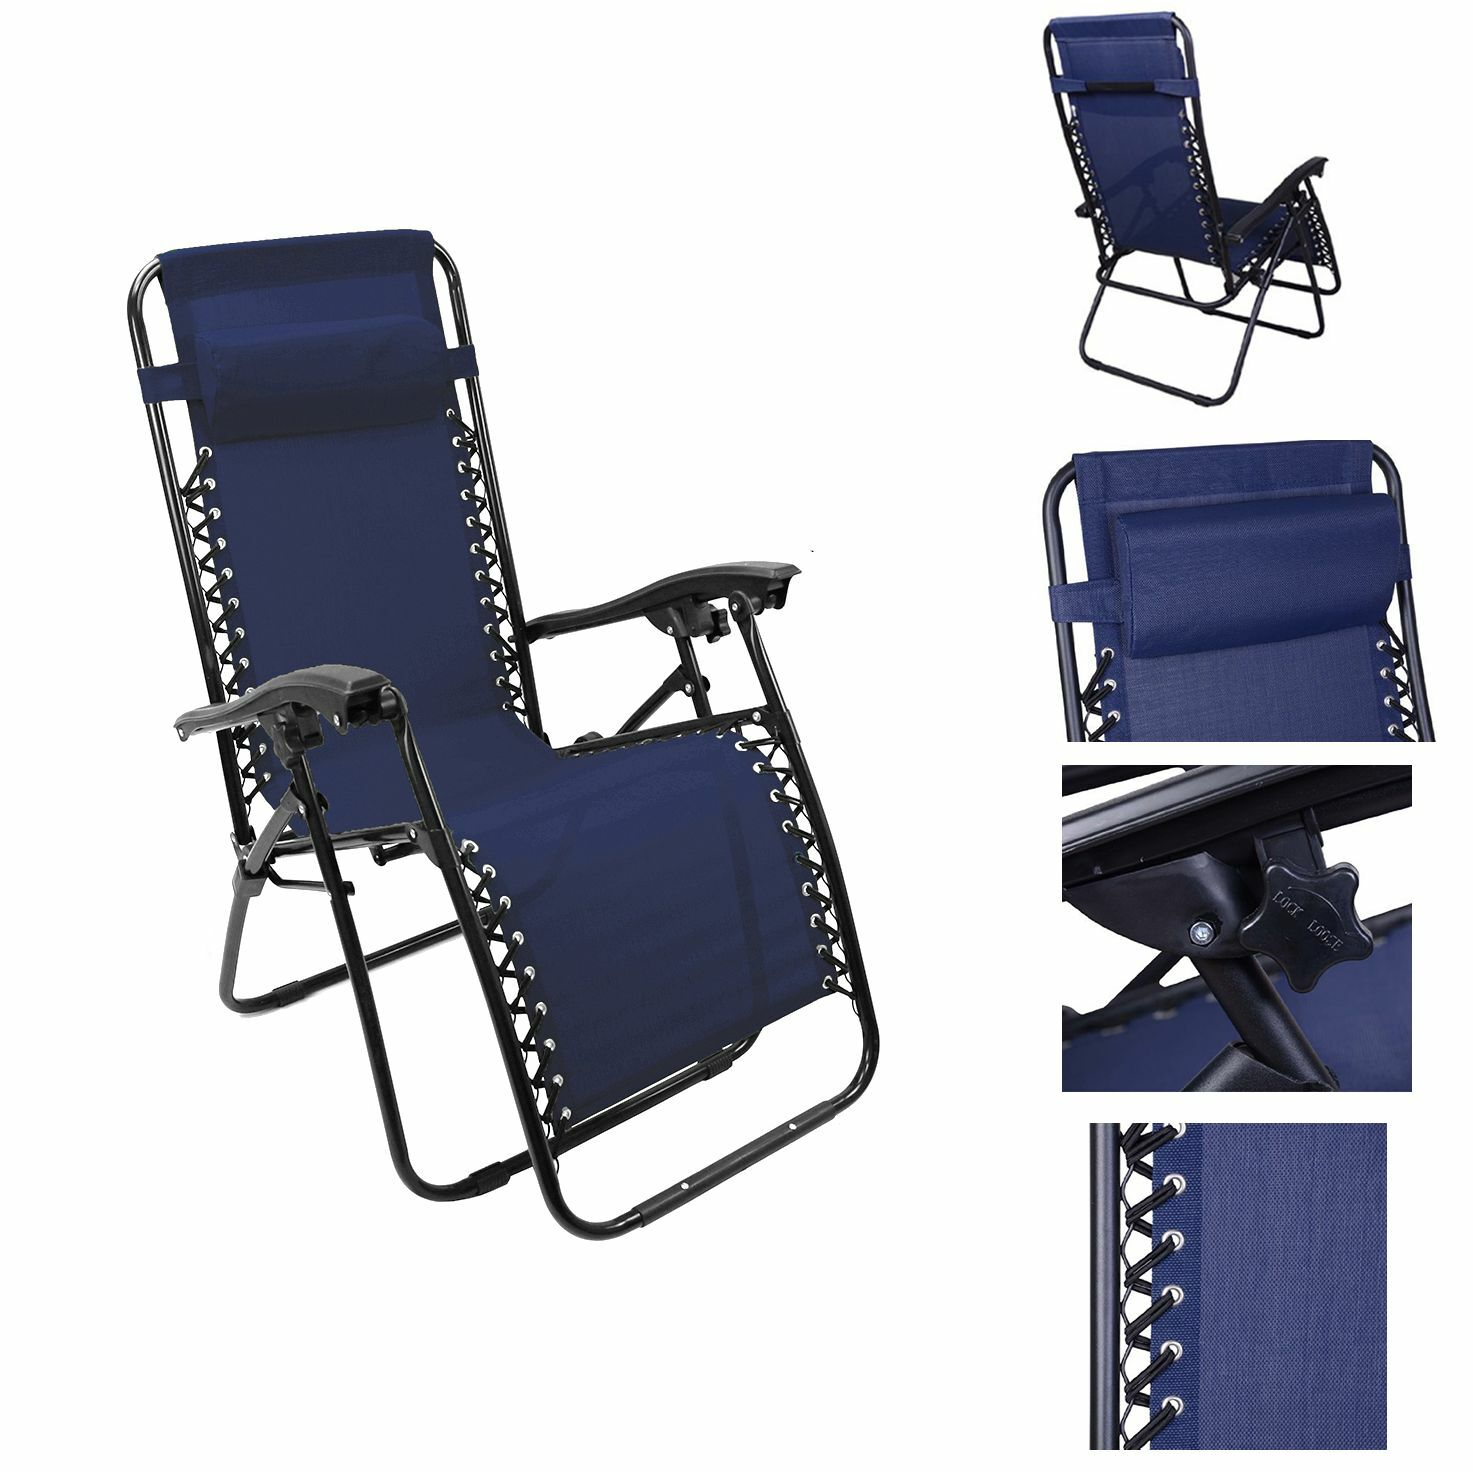 Lounge chair recliner reclining patio pool beach outdoor for Reclining patio chair